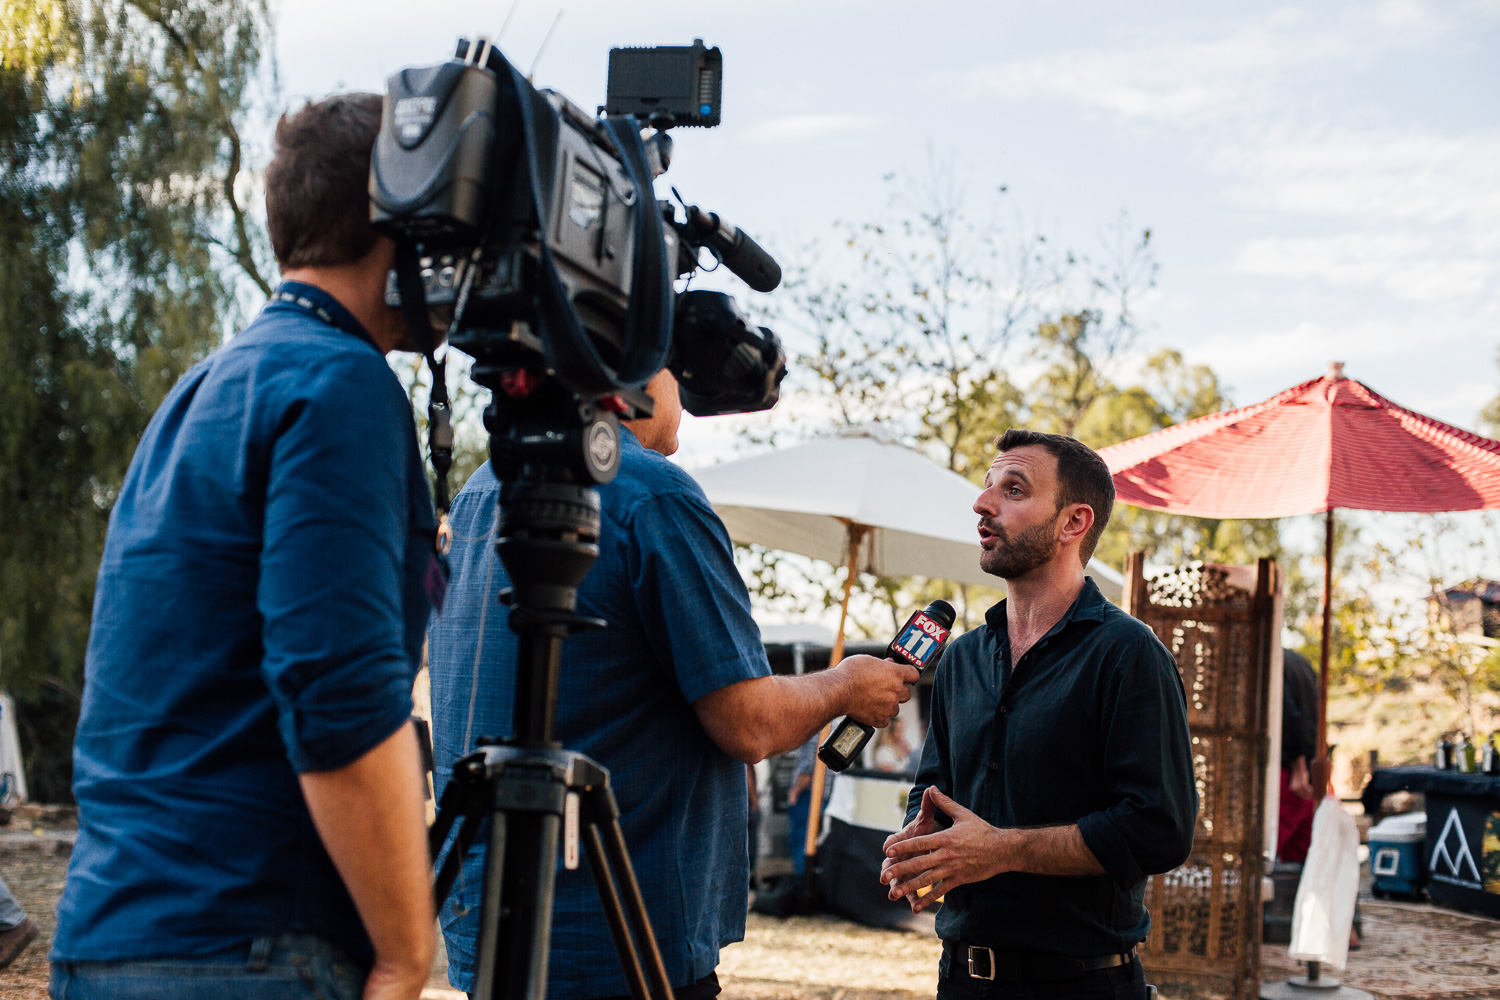 The interest in Evoxe comes from all over the United States. In Malibu at the Emerald Exchange Michael gives an interview to Fox news